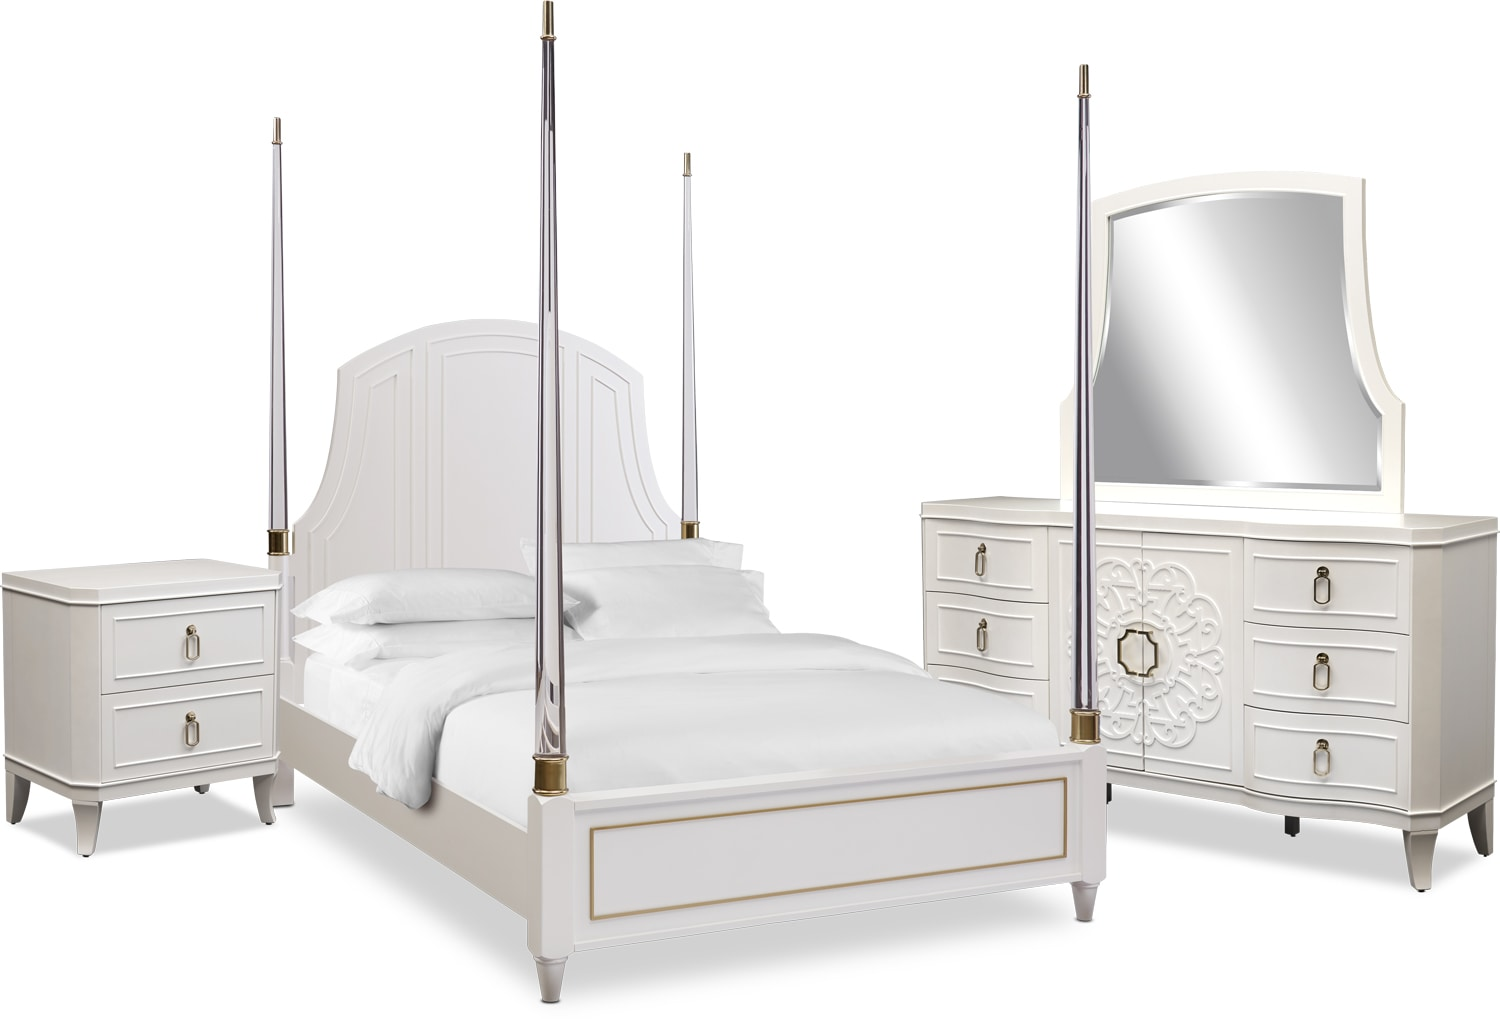 Bedroom Furniture - Isabel 6-Piece Post Bedroom Set with Nightstand, Dresser and Mirror